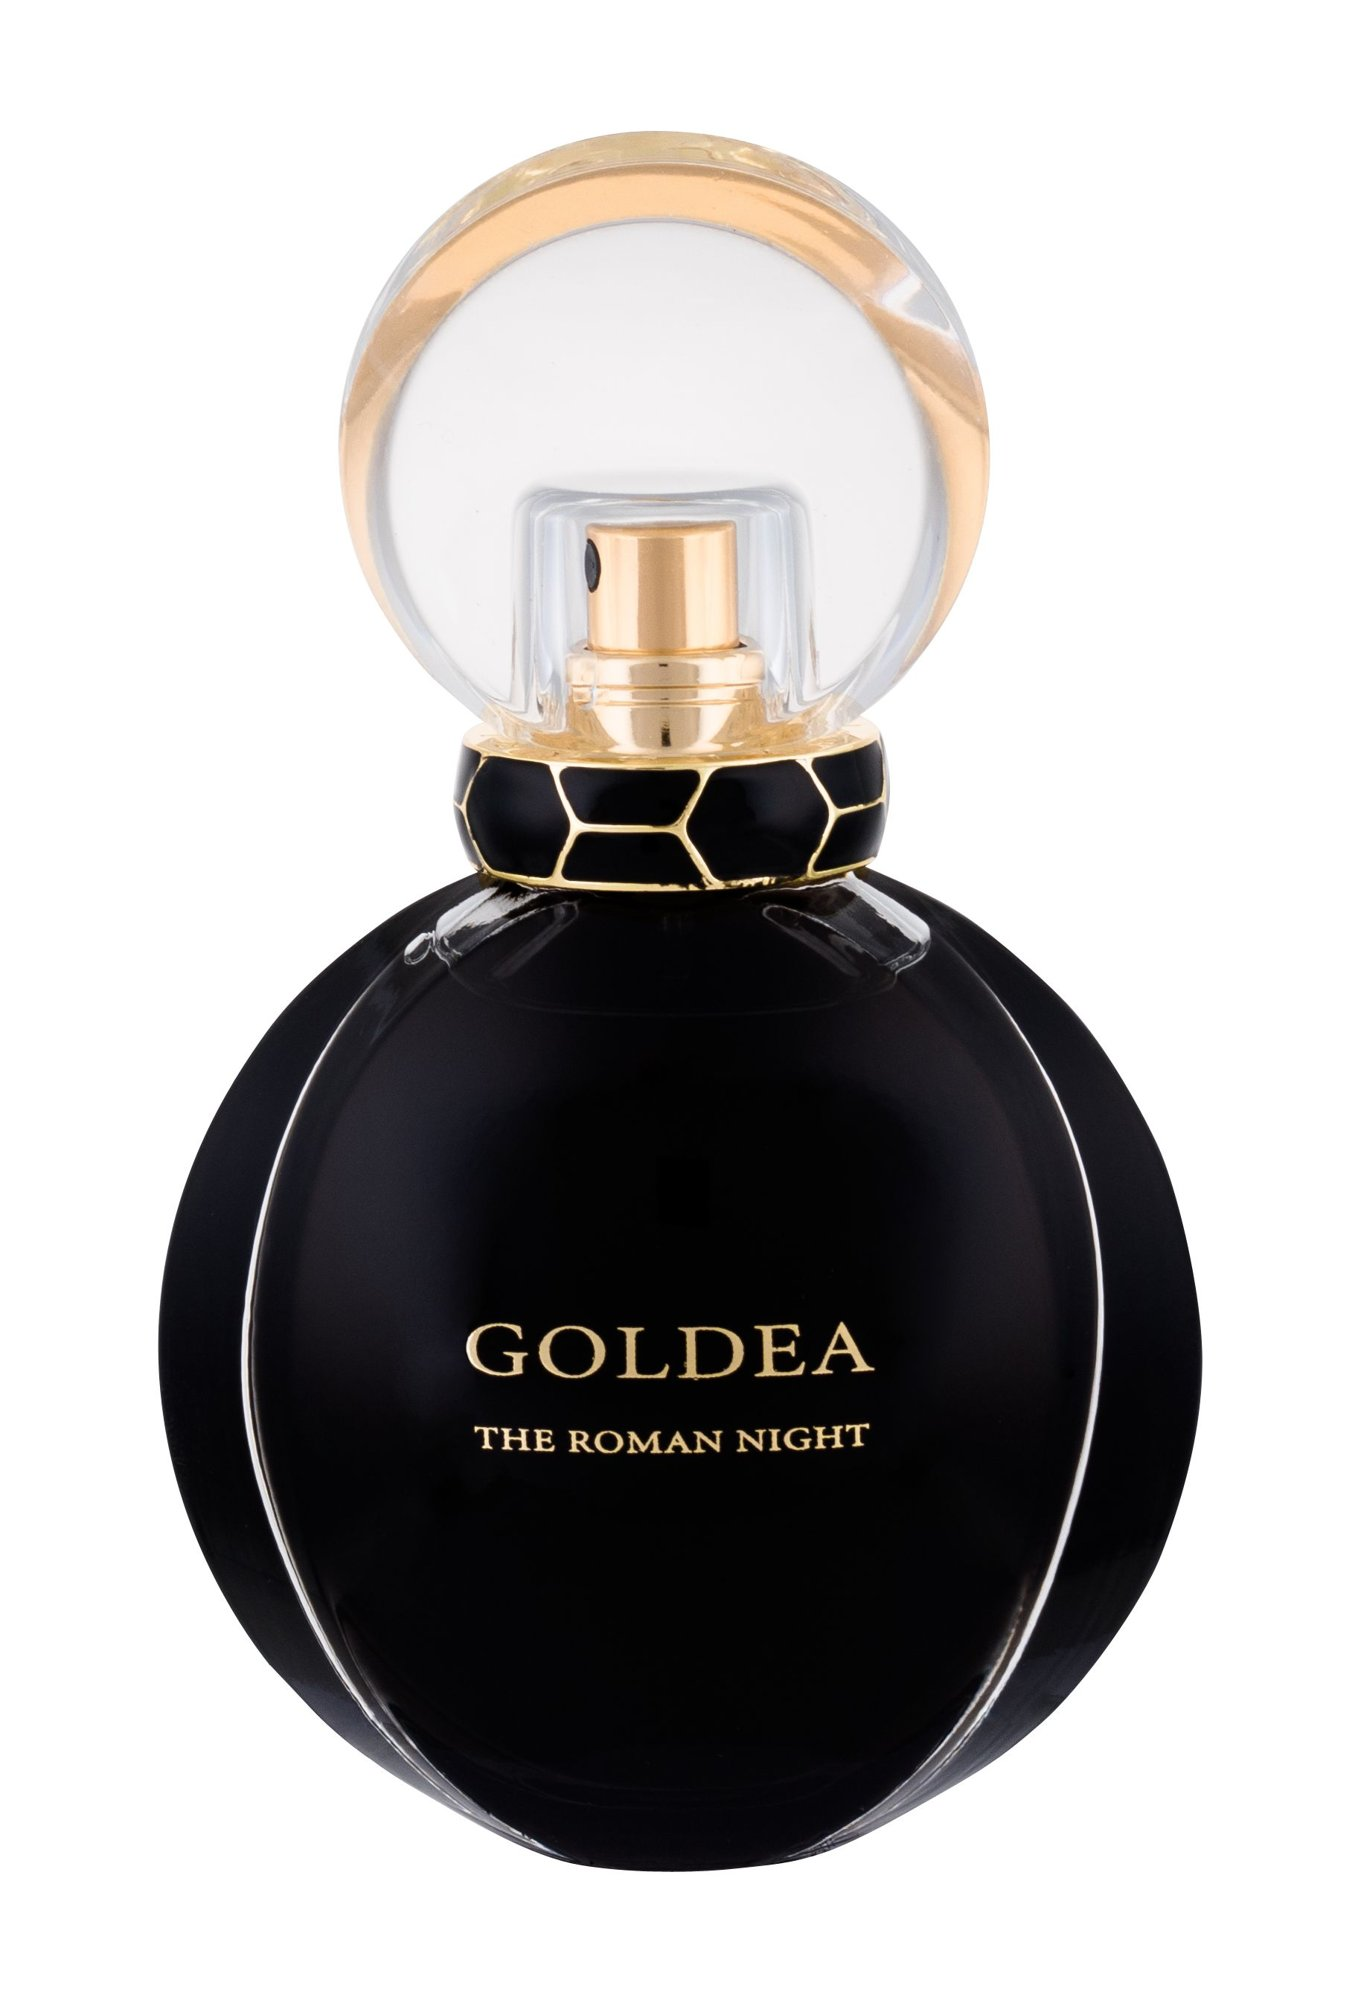 Bvlgari Goldea The Roman Night, Parfumovaná voda 30ml